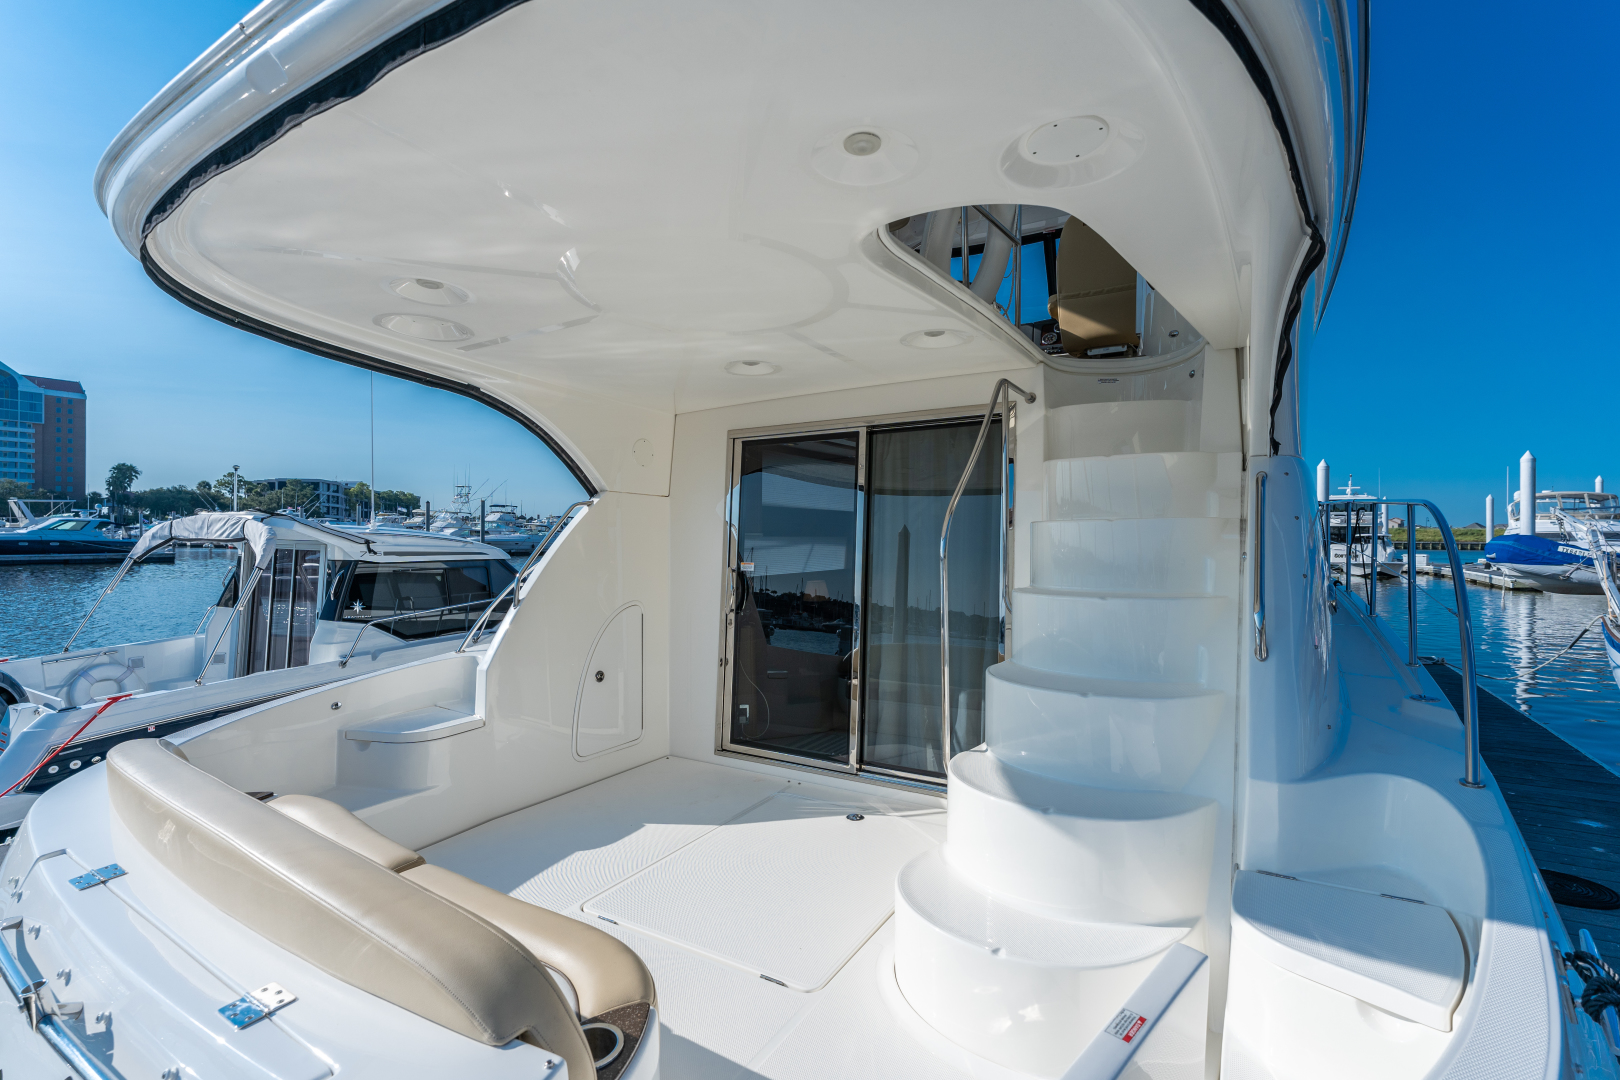 Meridian-441 Motor Yacht 2016-Friend Ship League City-Texas-United States-Meridian 441 2016 Friend Ship-1508185 | Thumbnail